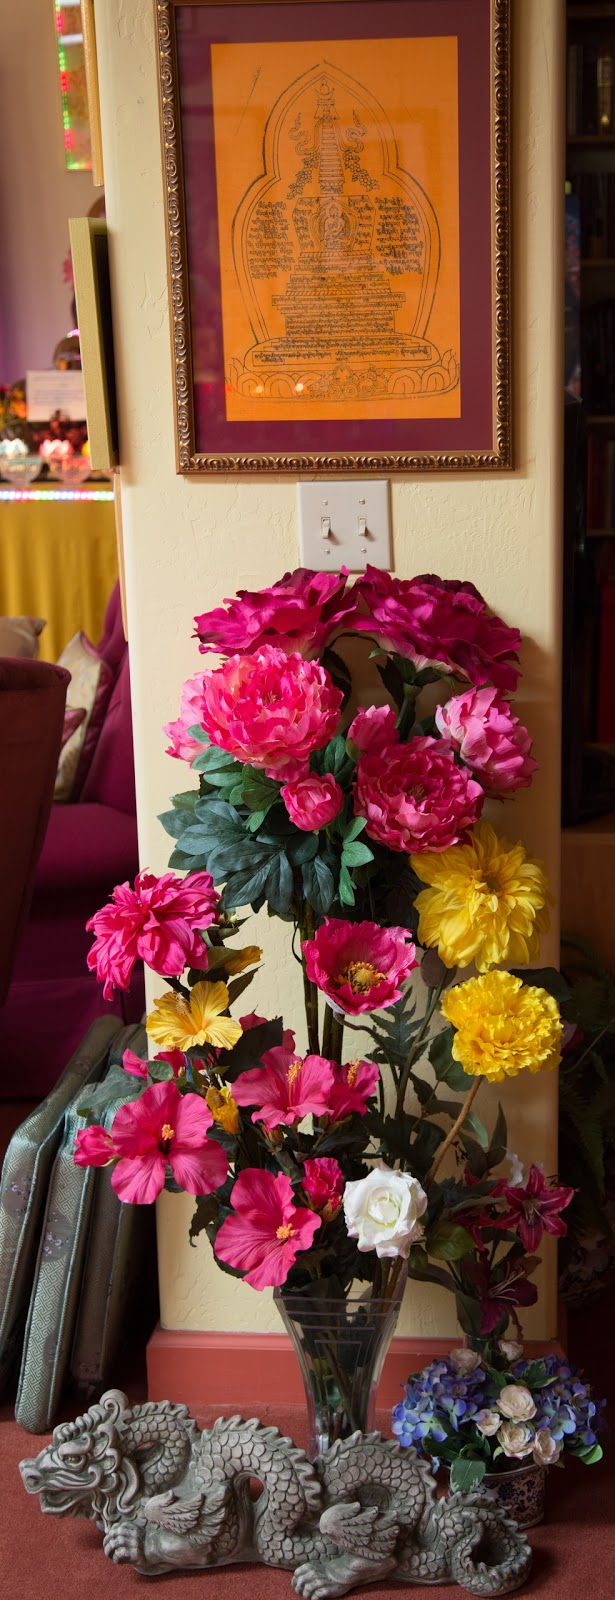 Flowers offered to mantra. Photo by Ven. Thubten Kunsang.